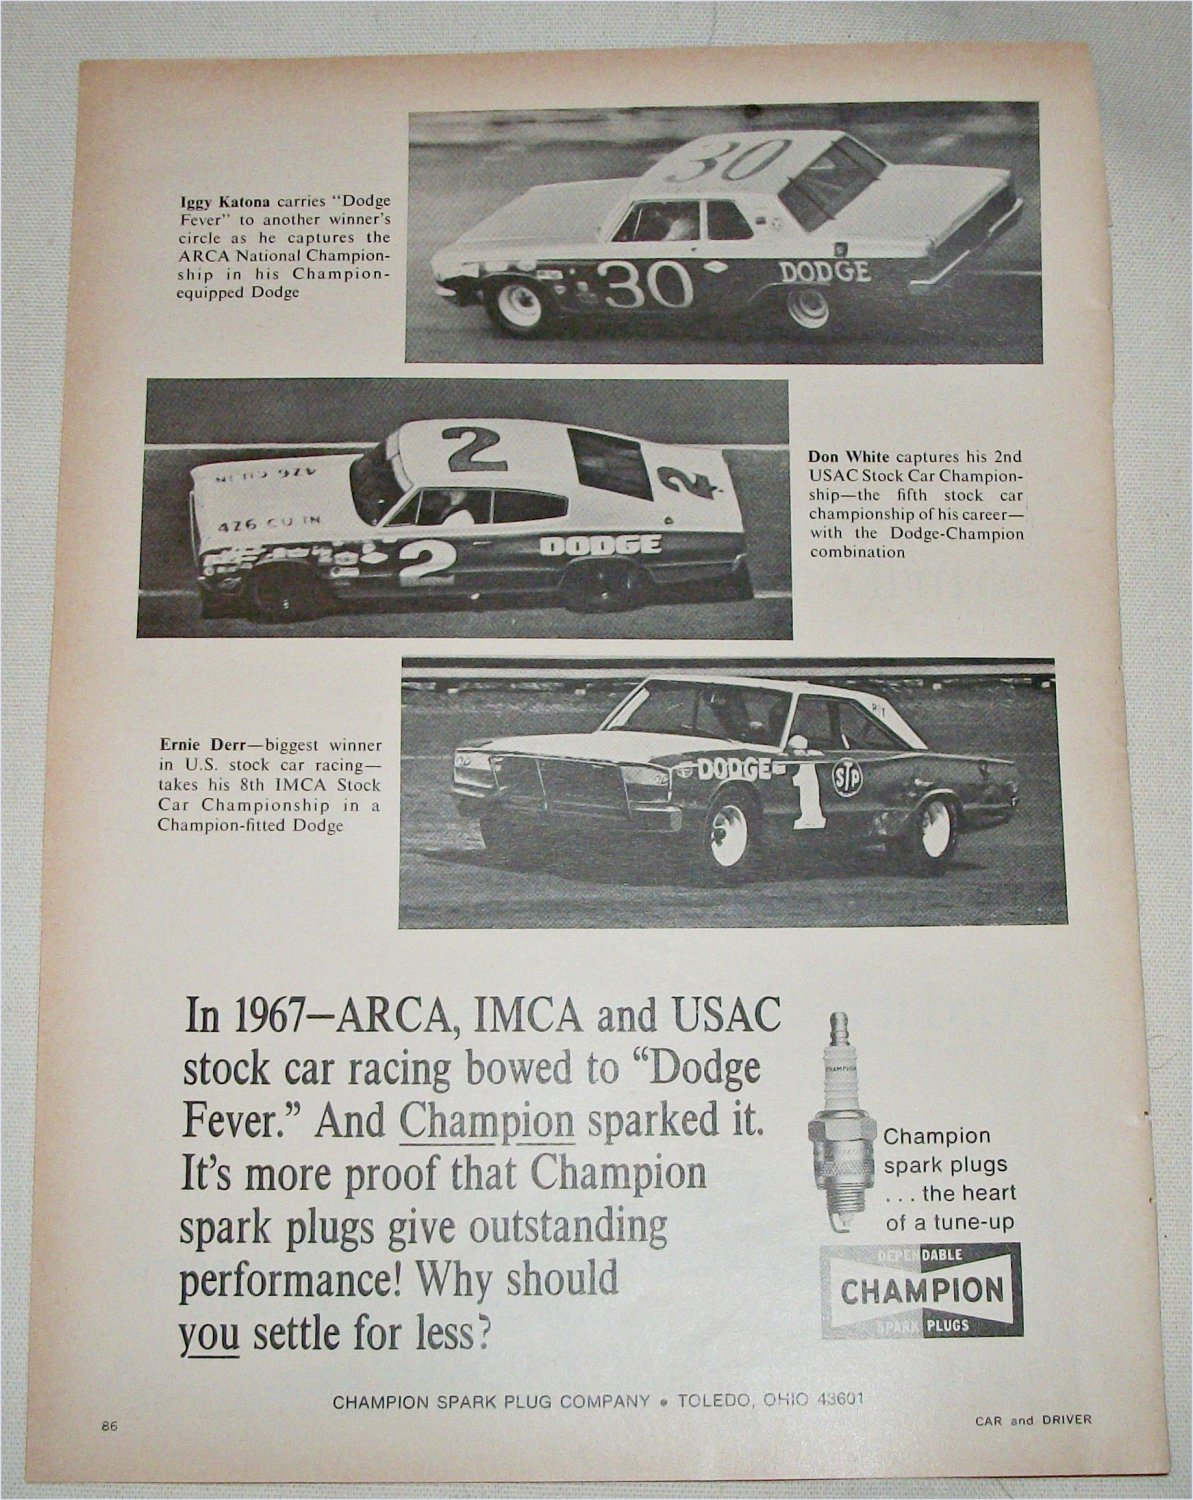 1968 Champion Spark Plugs Dodge Fever ad